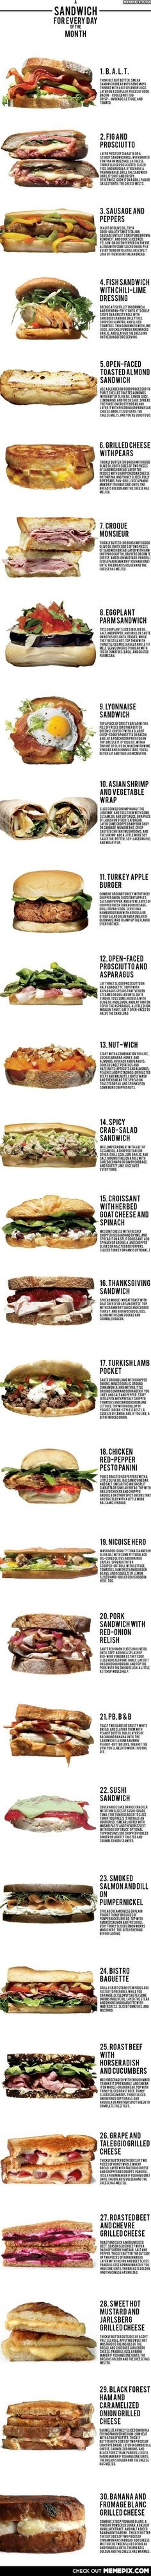 A new sandwich, every day of the month!